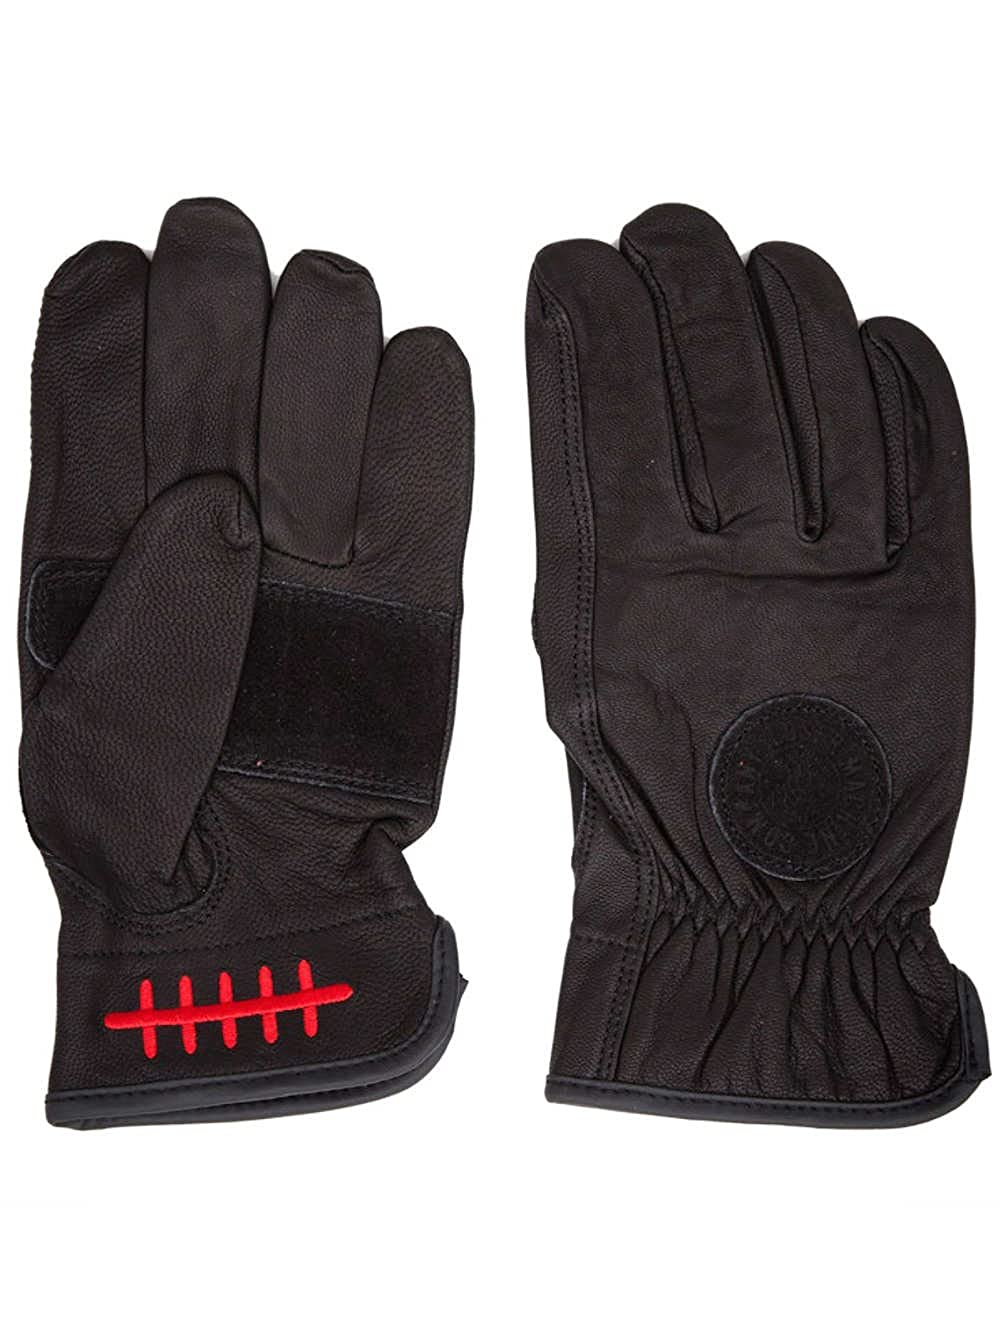 TEST Loser Machine The Death Grip Gloves